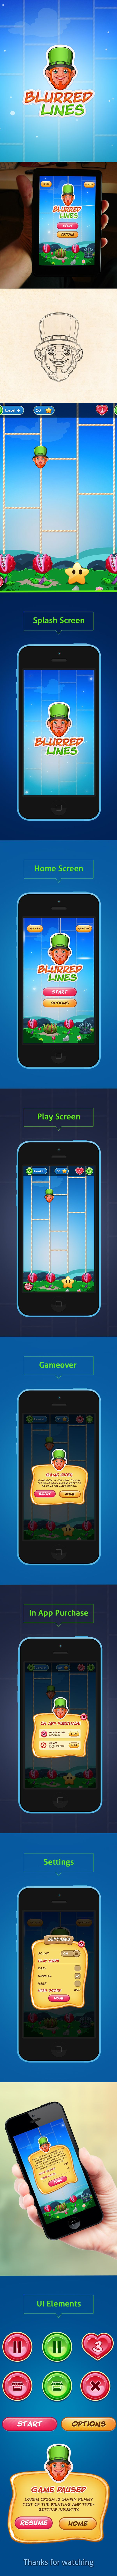 Blurred lines iOS game (iPhone & iPad) on Behance